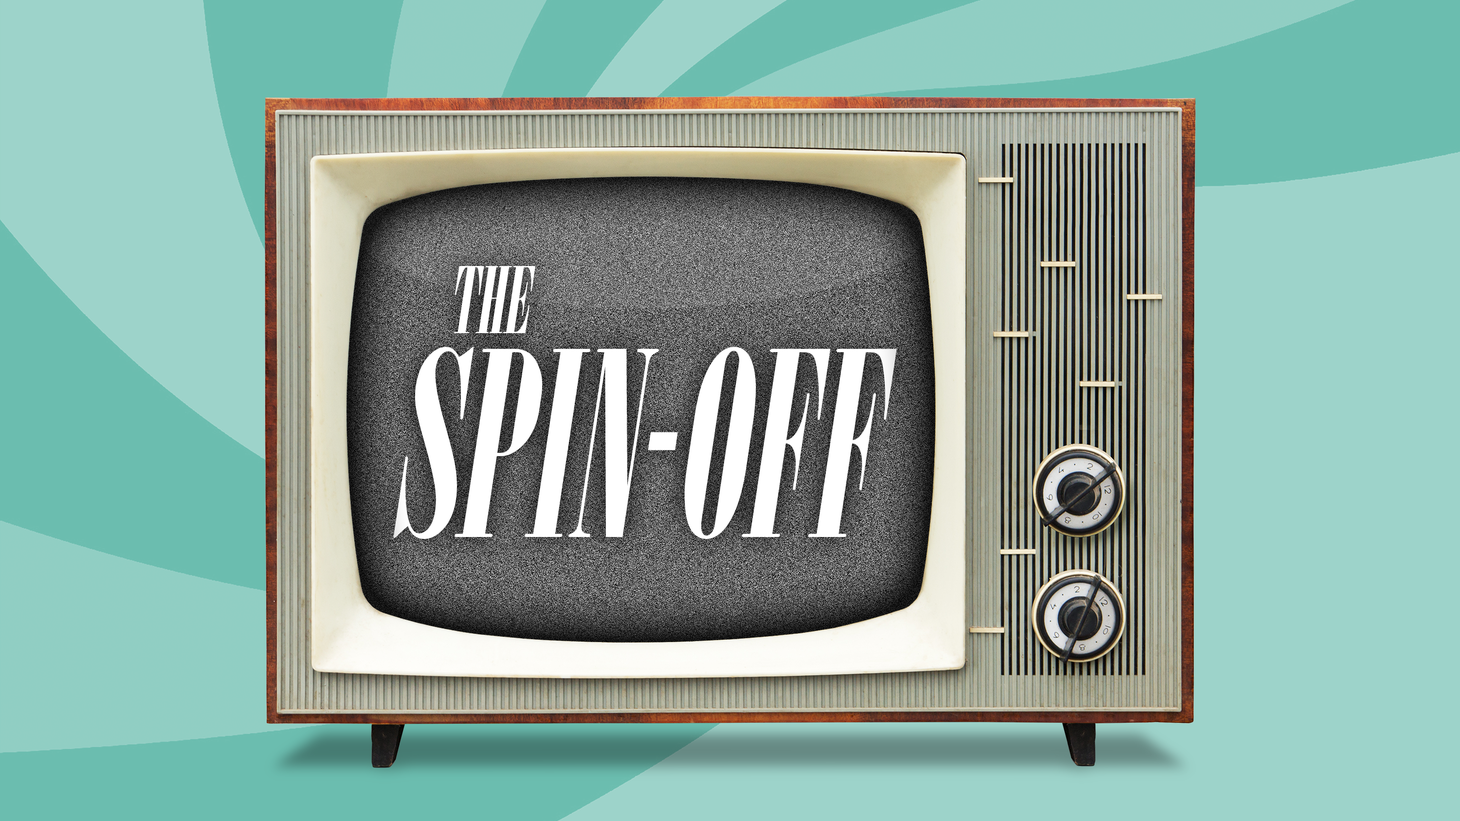 In the first episode since the election, The Spin-off crew contemplates the role TV news had in this year's presidential contest, and what TV might look like going forward. Plus, what's up with NFL ratings this year, and Dan's take on the newest Gilmore Girls revival on Netflix.